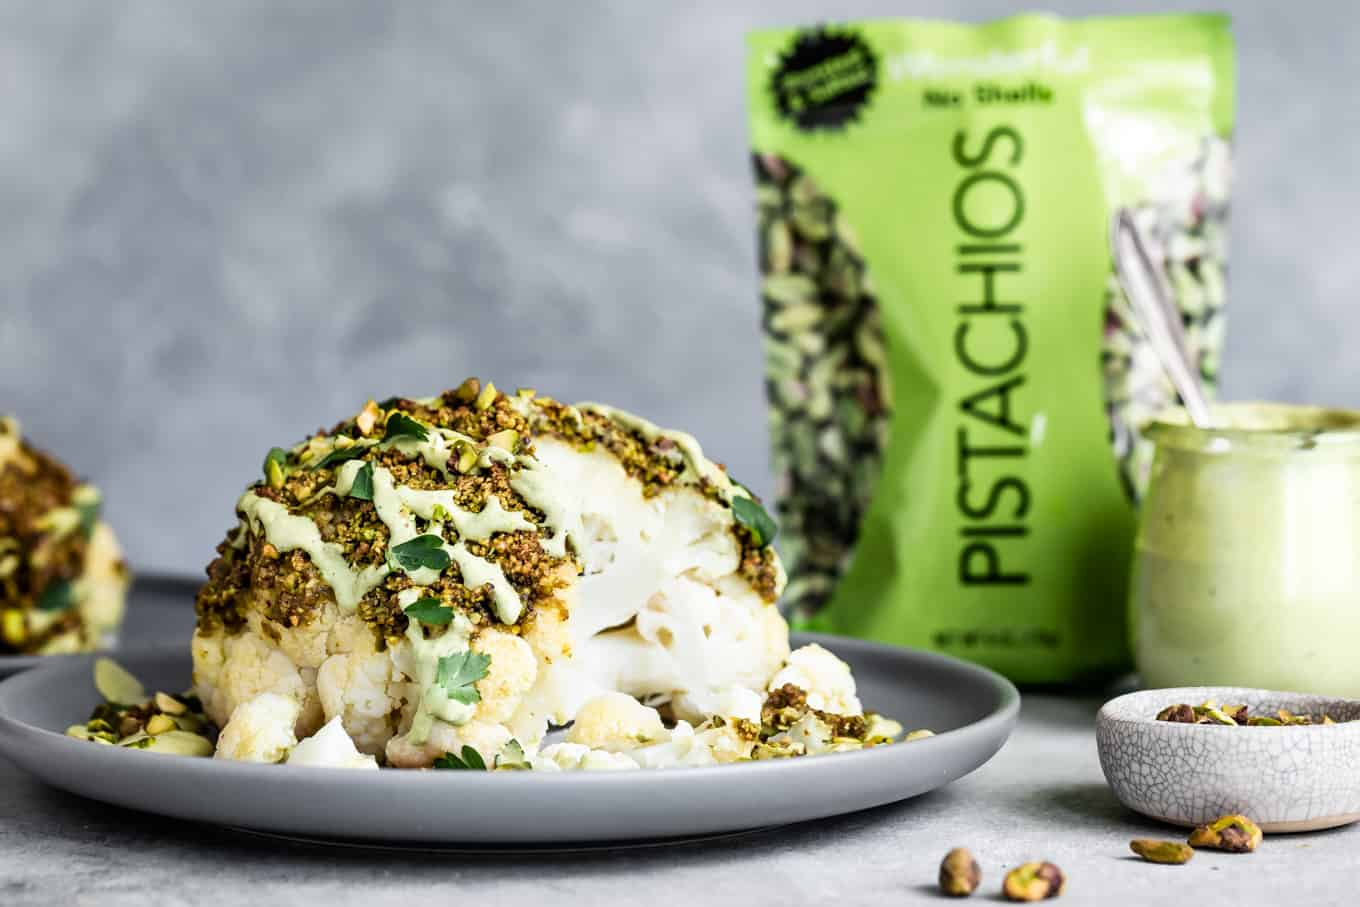 Pistachio-Crusted Whole Roasted Cauliflower with Pistachio Cream SaucePistachio-Crusted Whole Roasted Cauliflower with Pistachio Cream Sauce